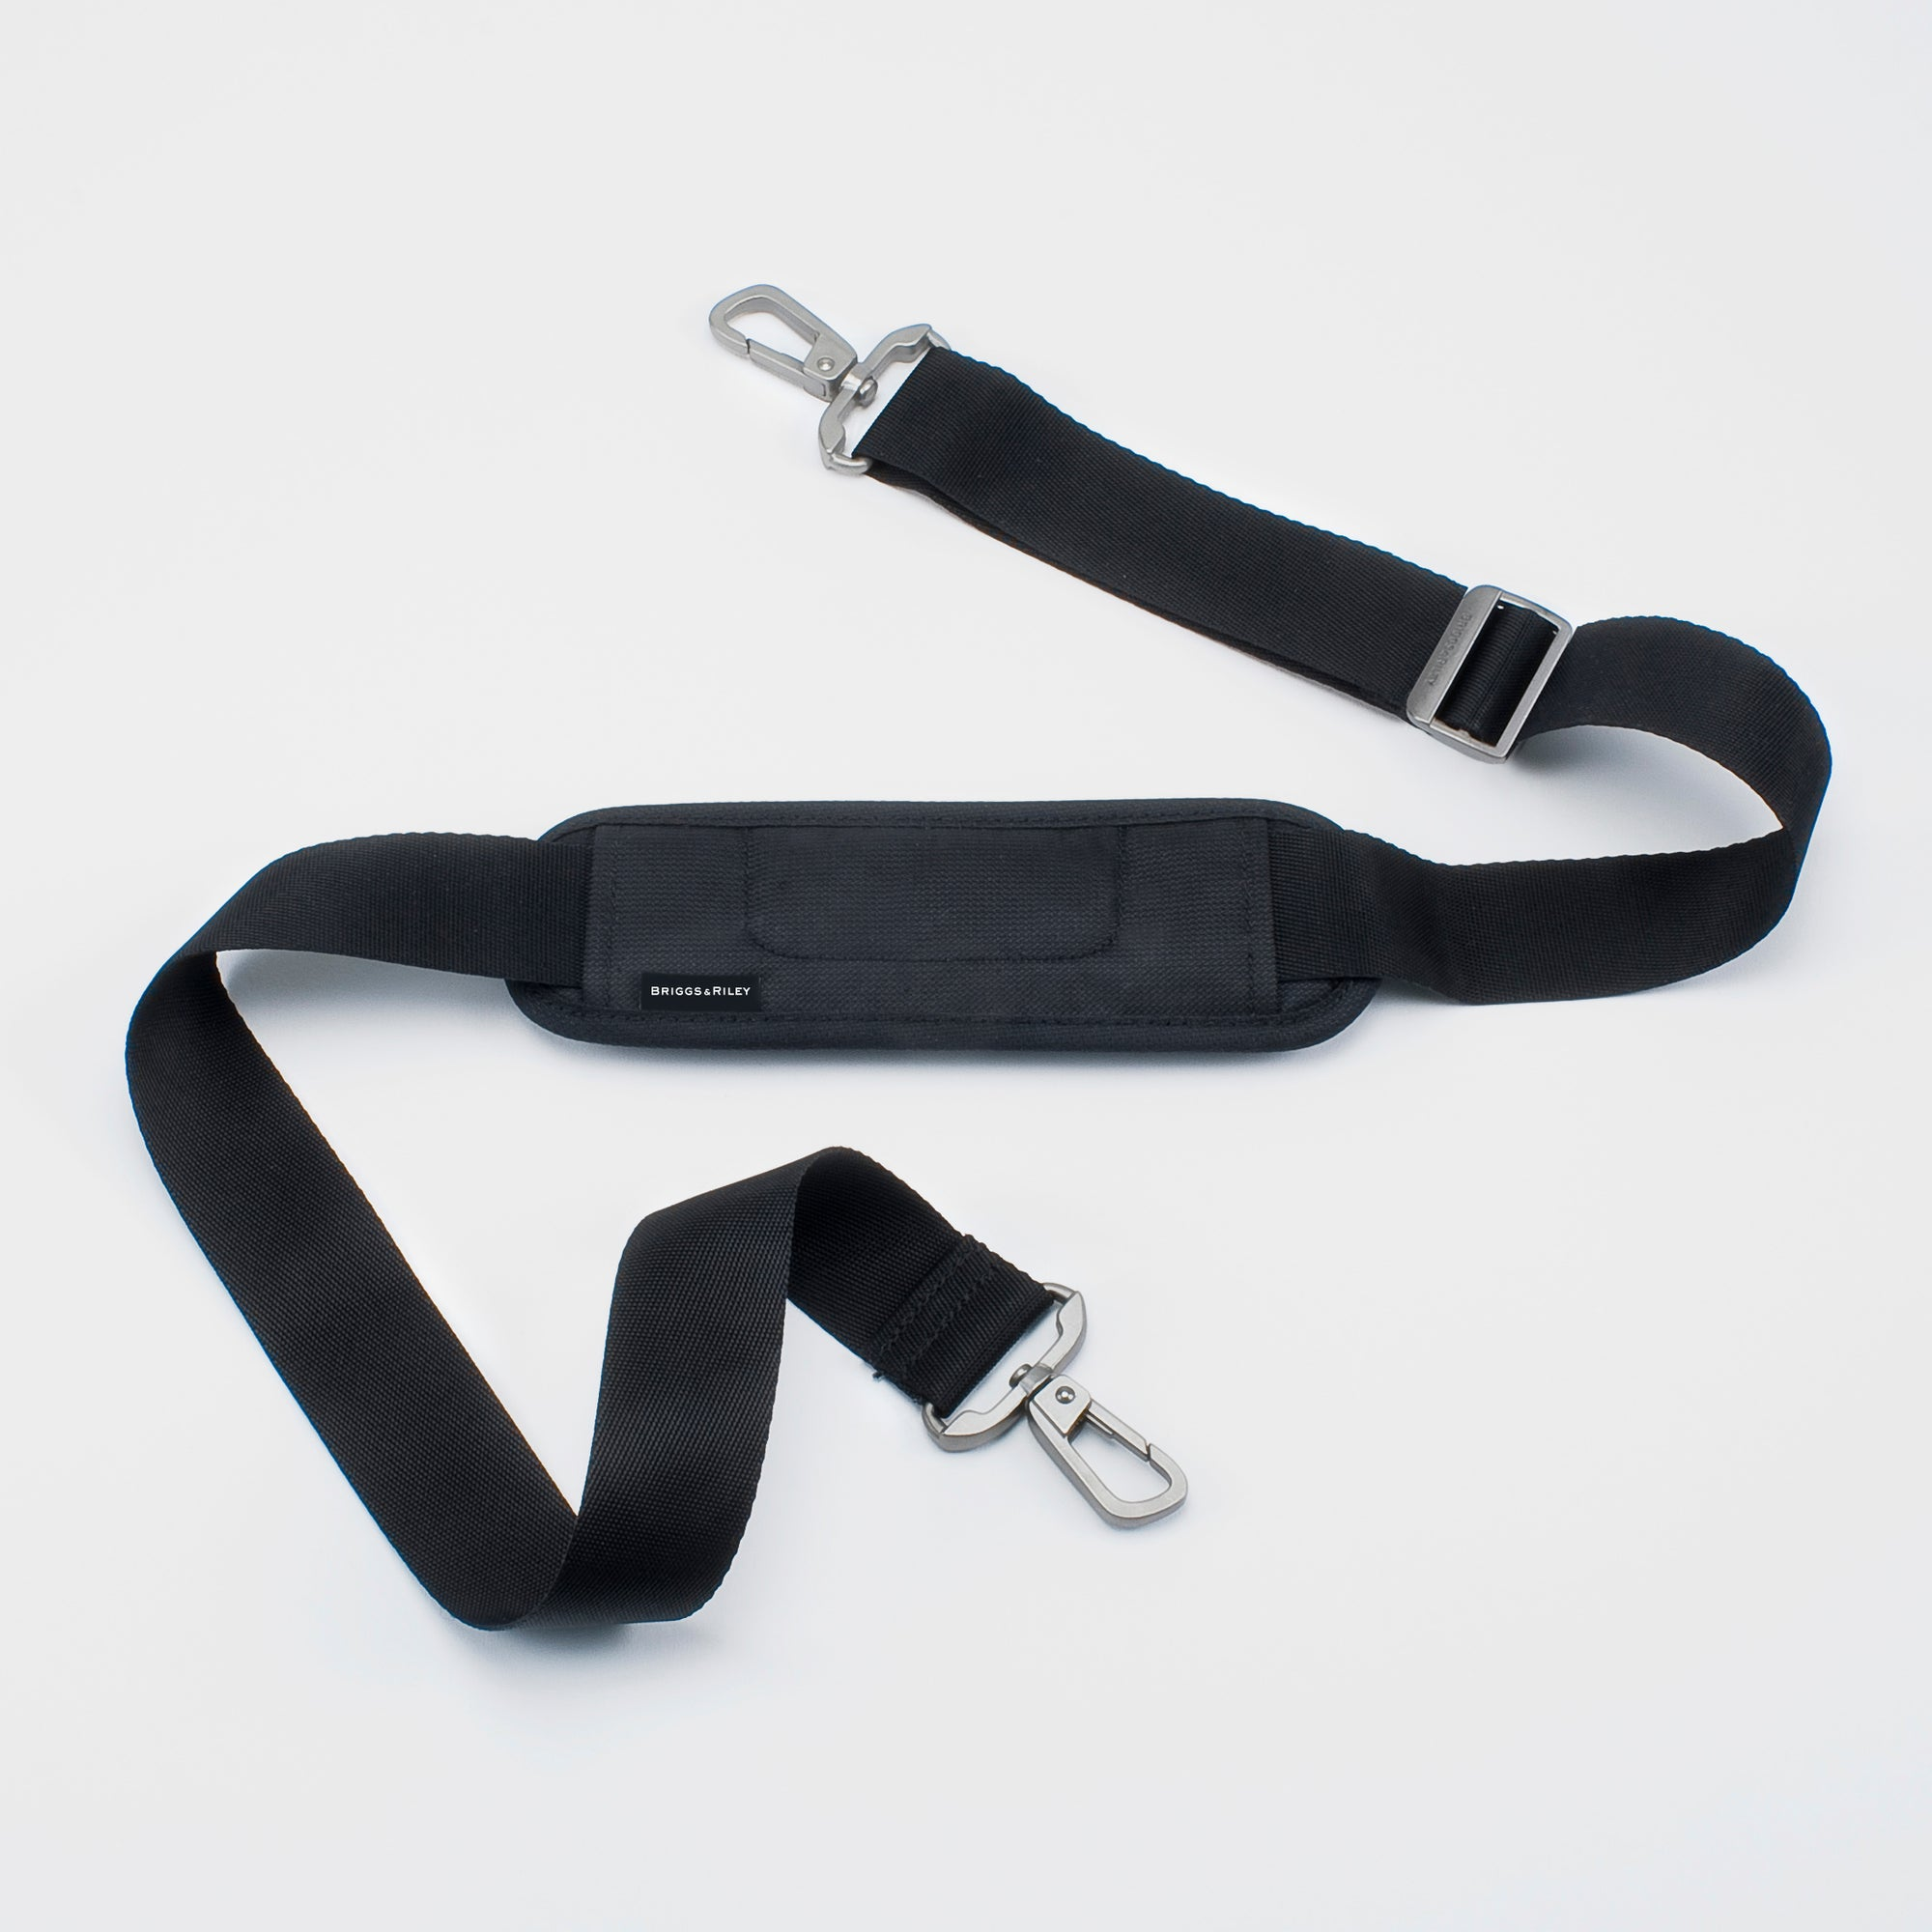 Replacement Accessory - Verb Shoulder Strap